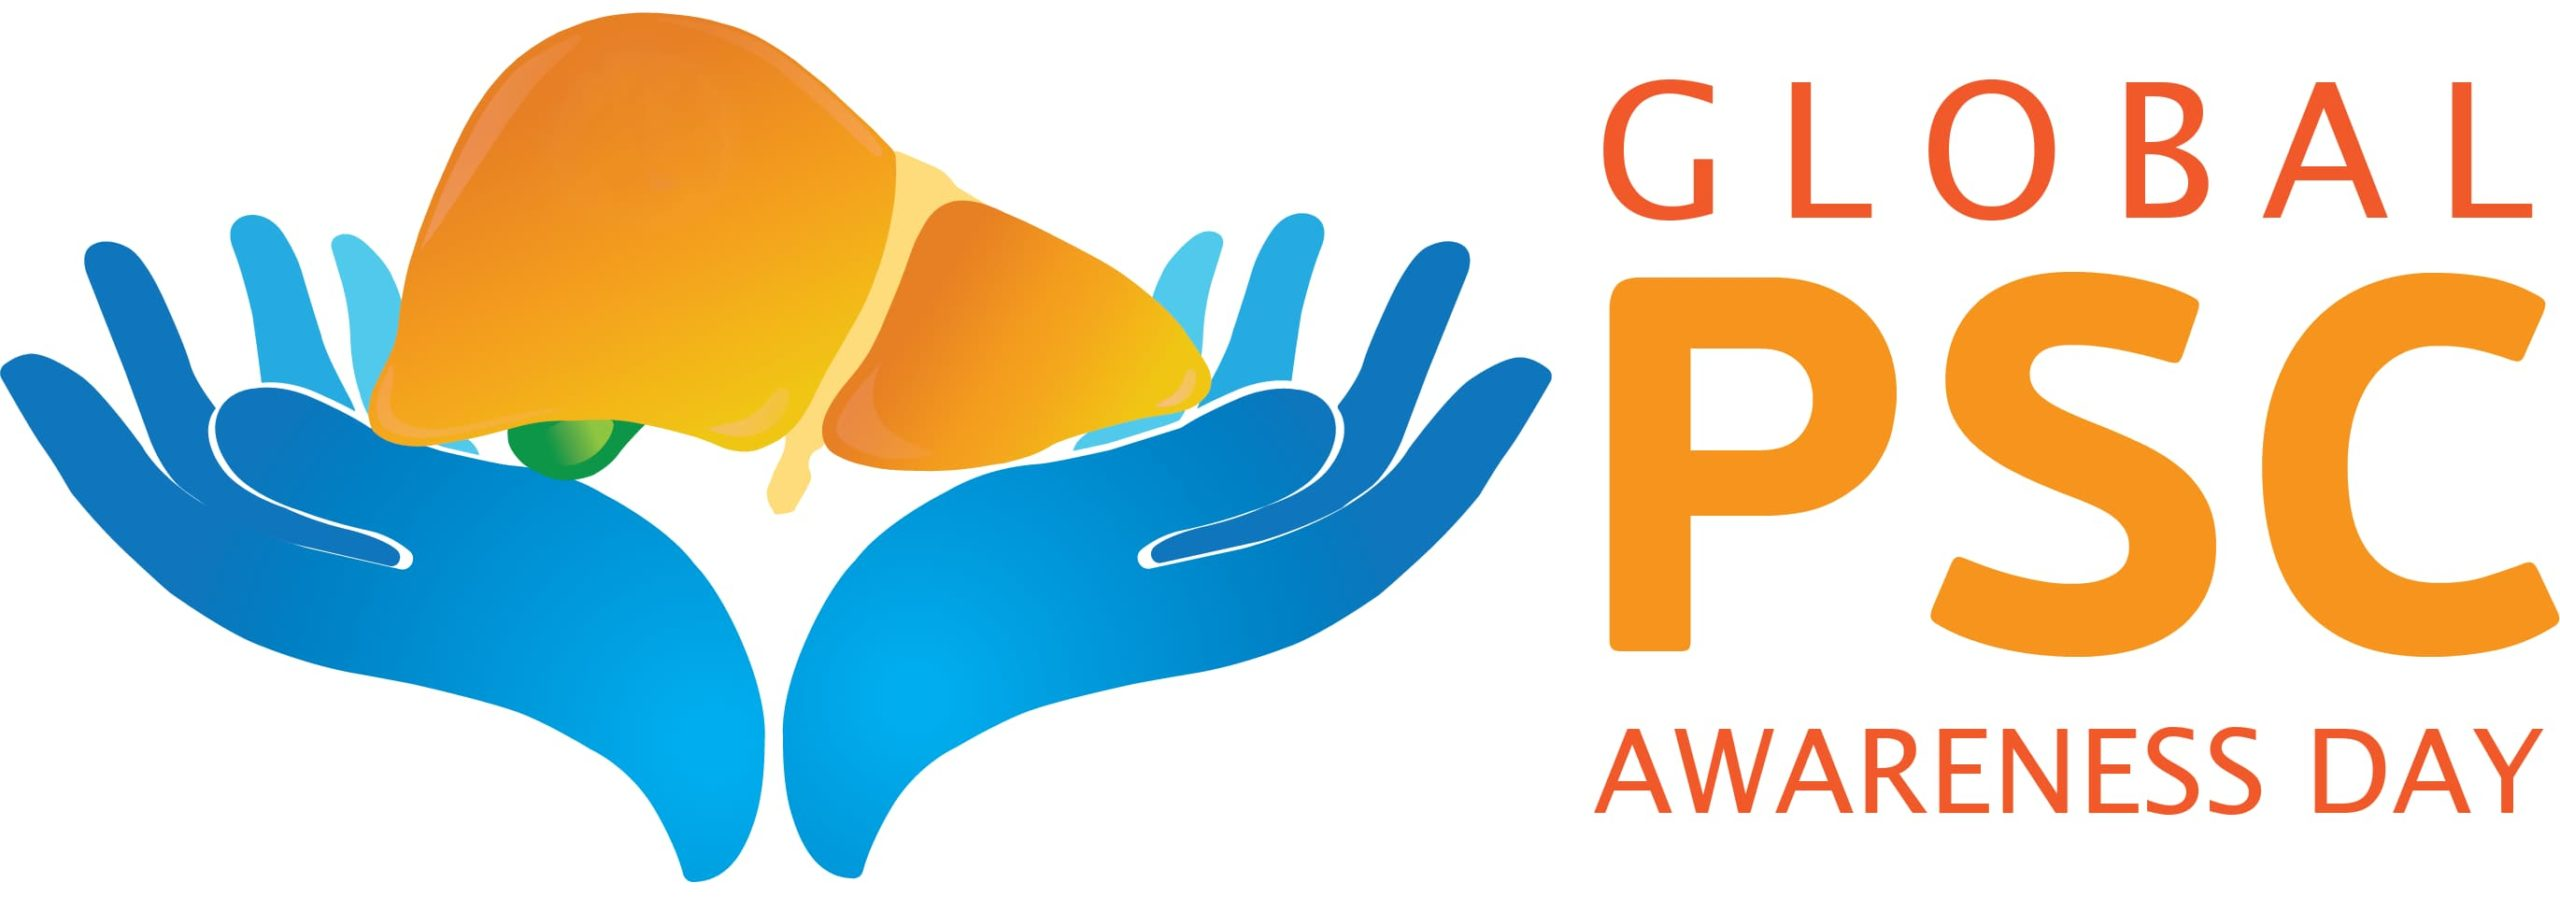 Global PSC Awareness Day logo PSC Support web